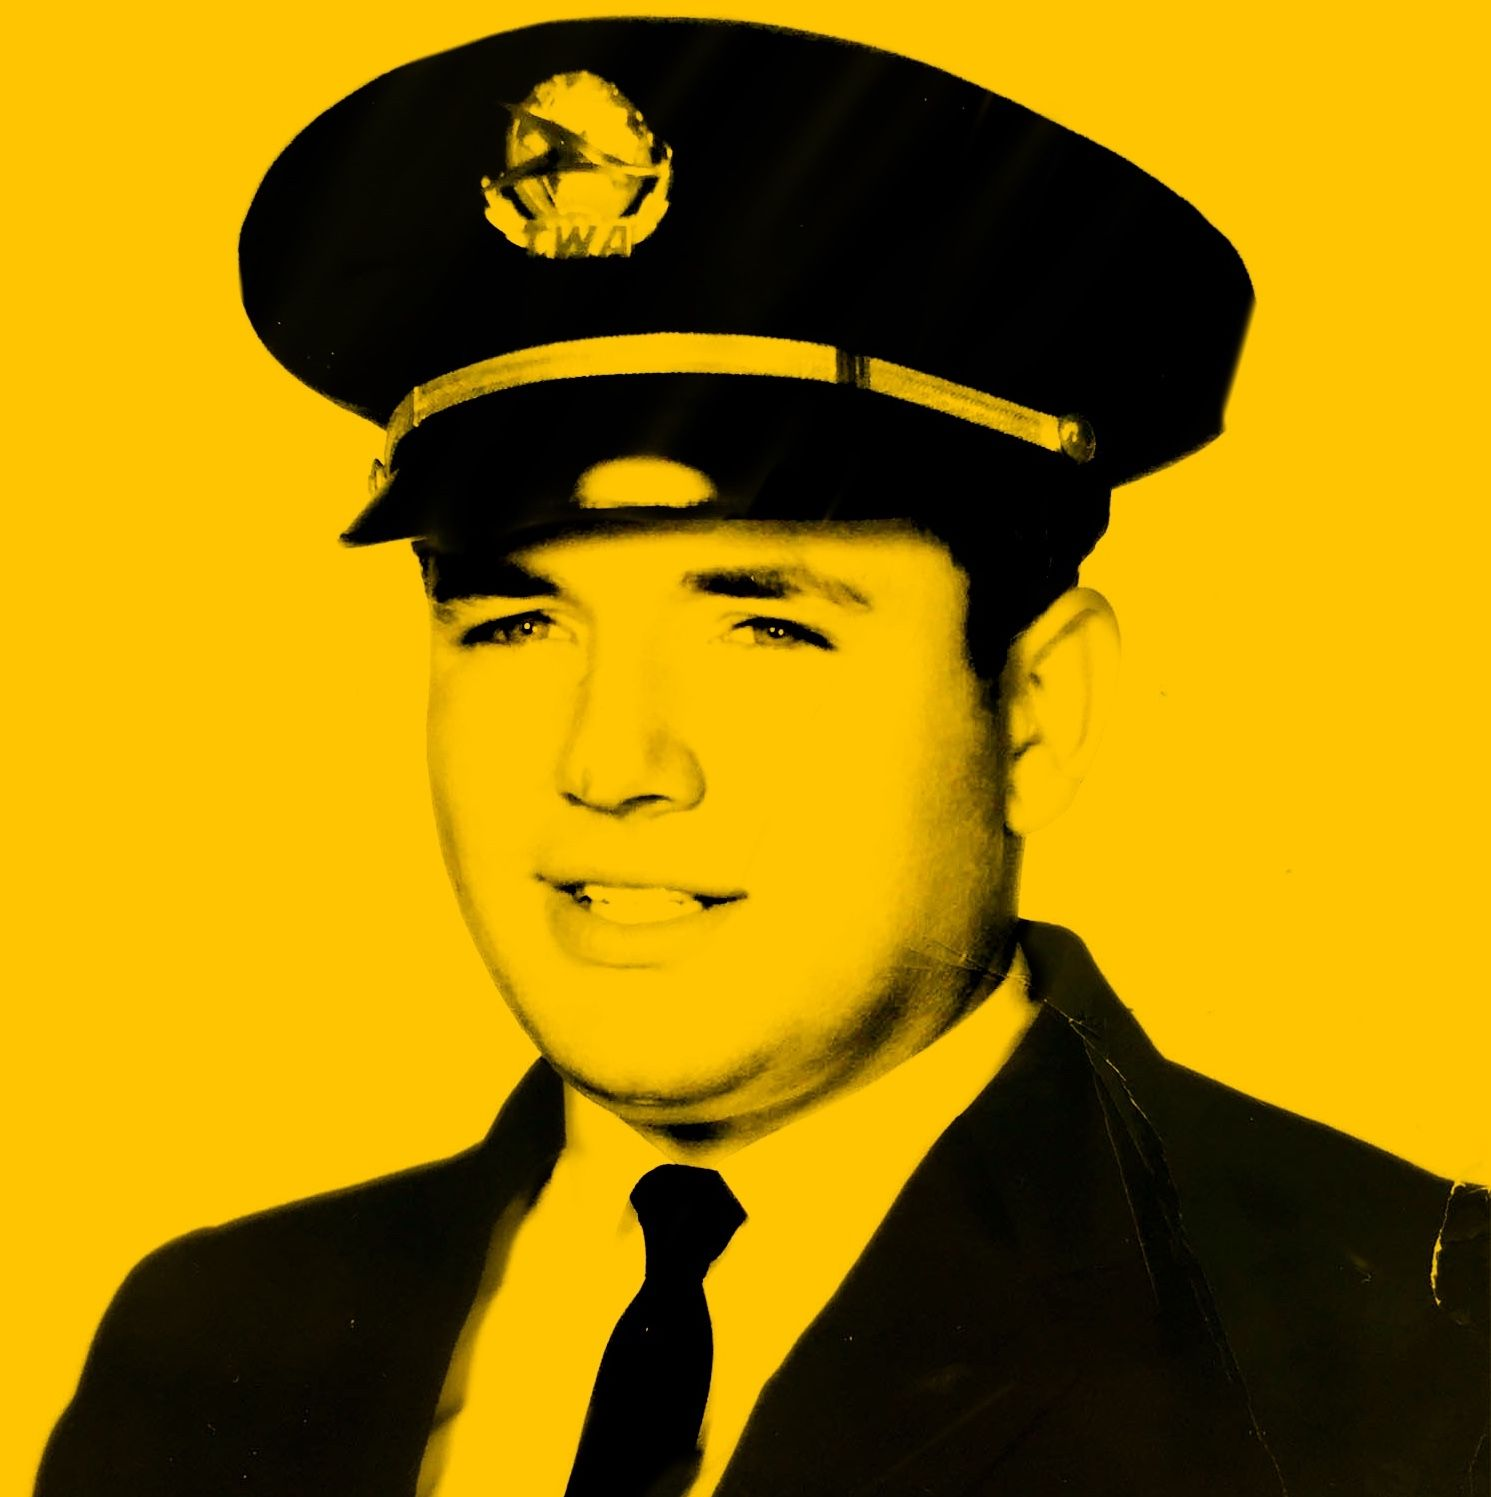 Barry Seal Part 1: The American Pilot